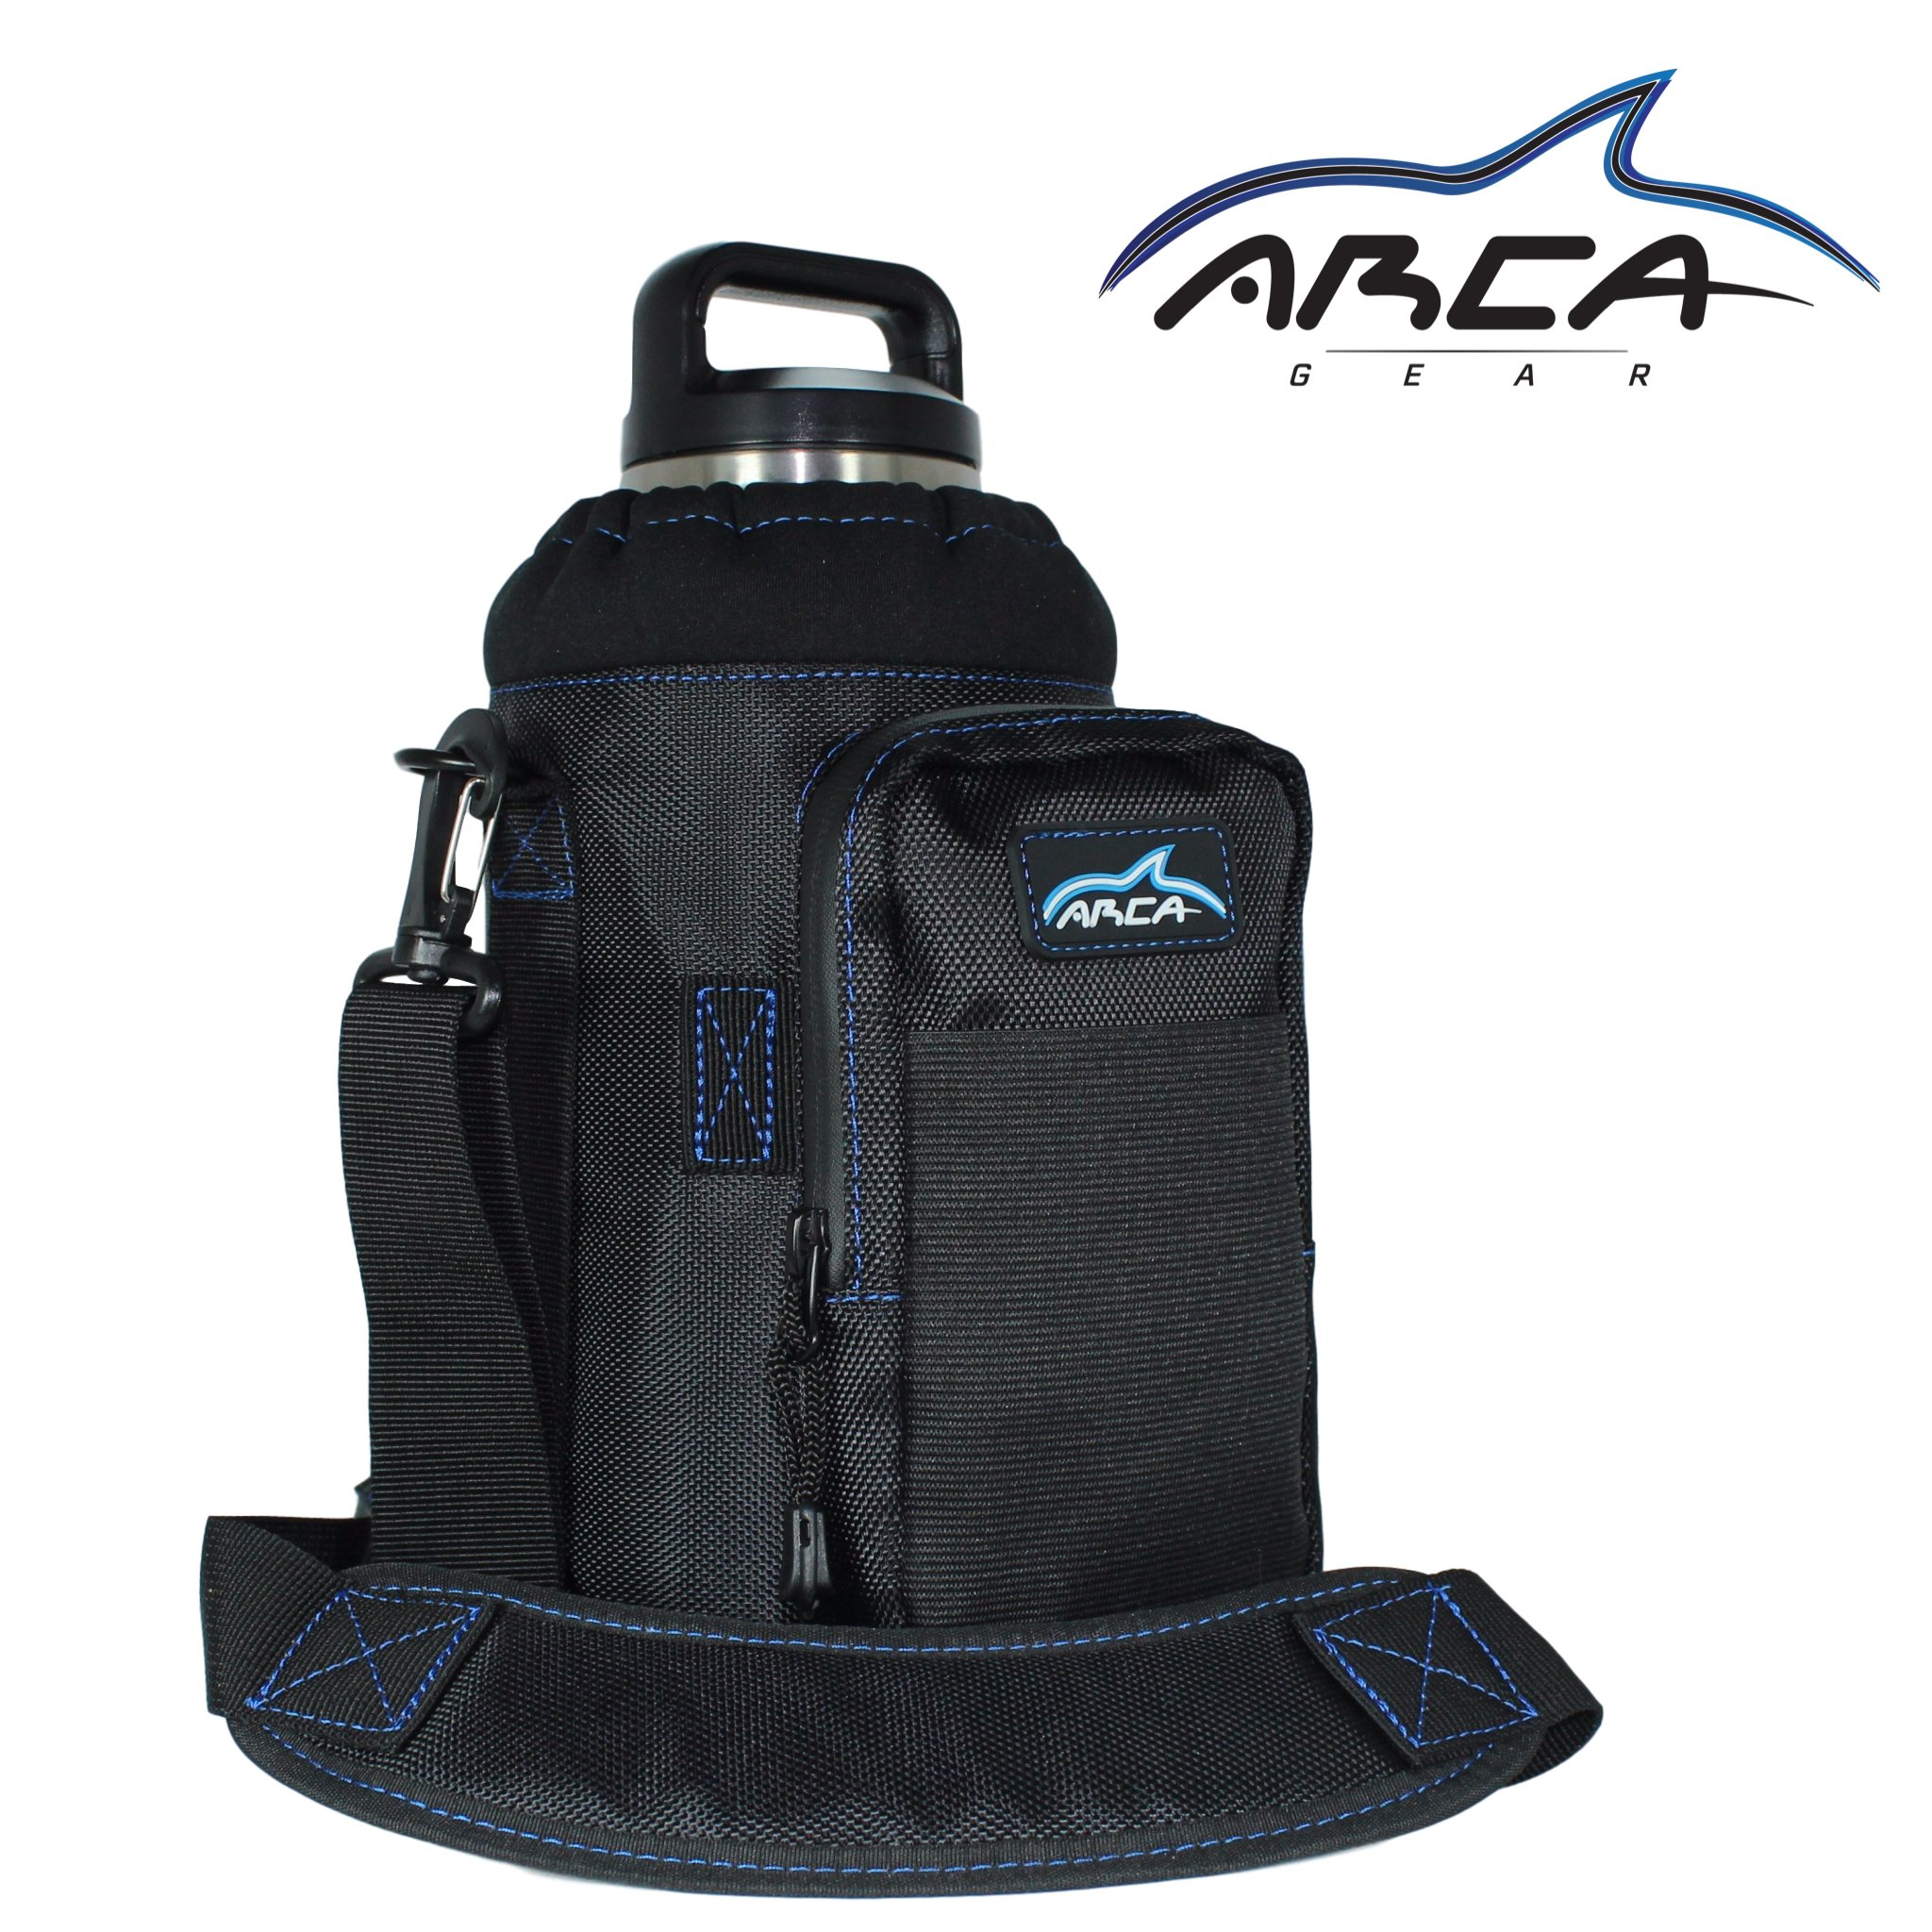 Arca Gear 64oz Insulated Stainless Bottle Carrier and Holder - Includes Carry Handle, Shoulder Strap, Wallet and Large Pocket for Storing items. Protect your Flask Rambler Growler or Water Bottle